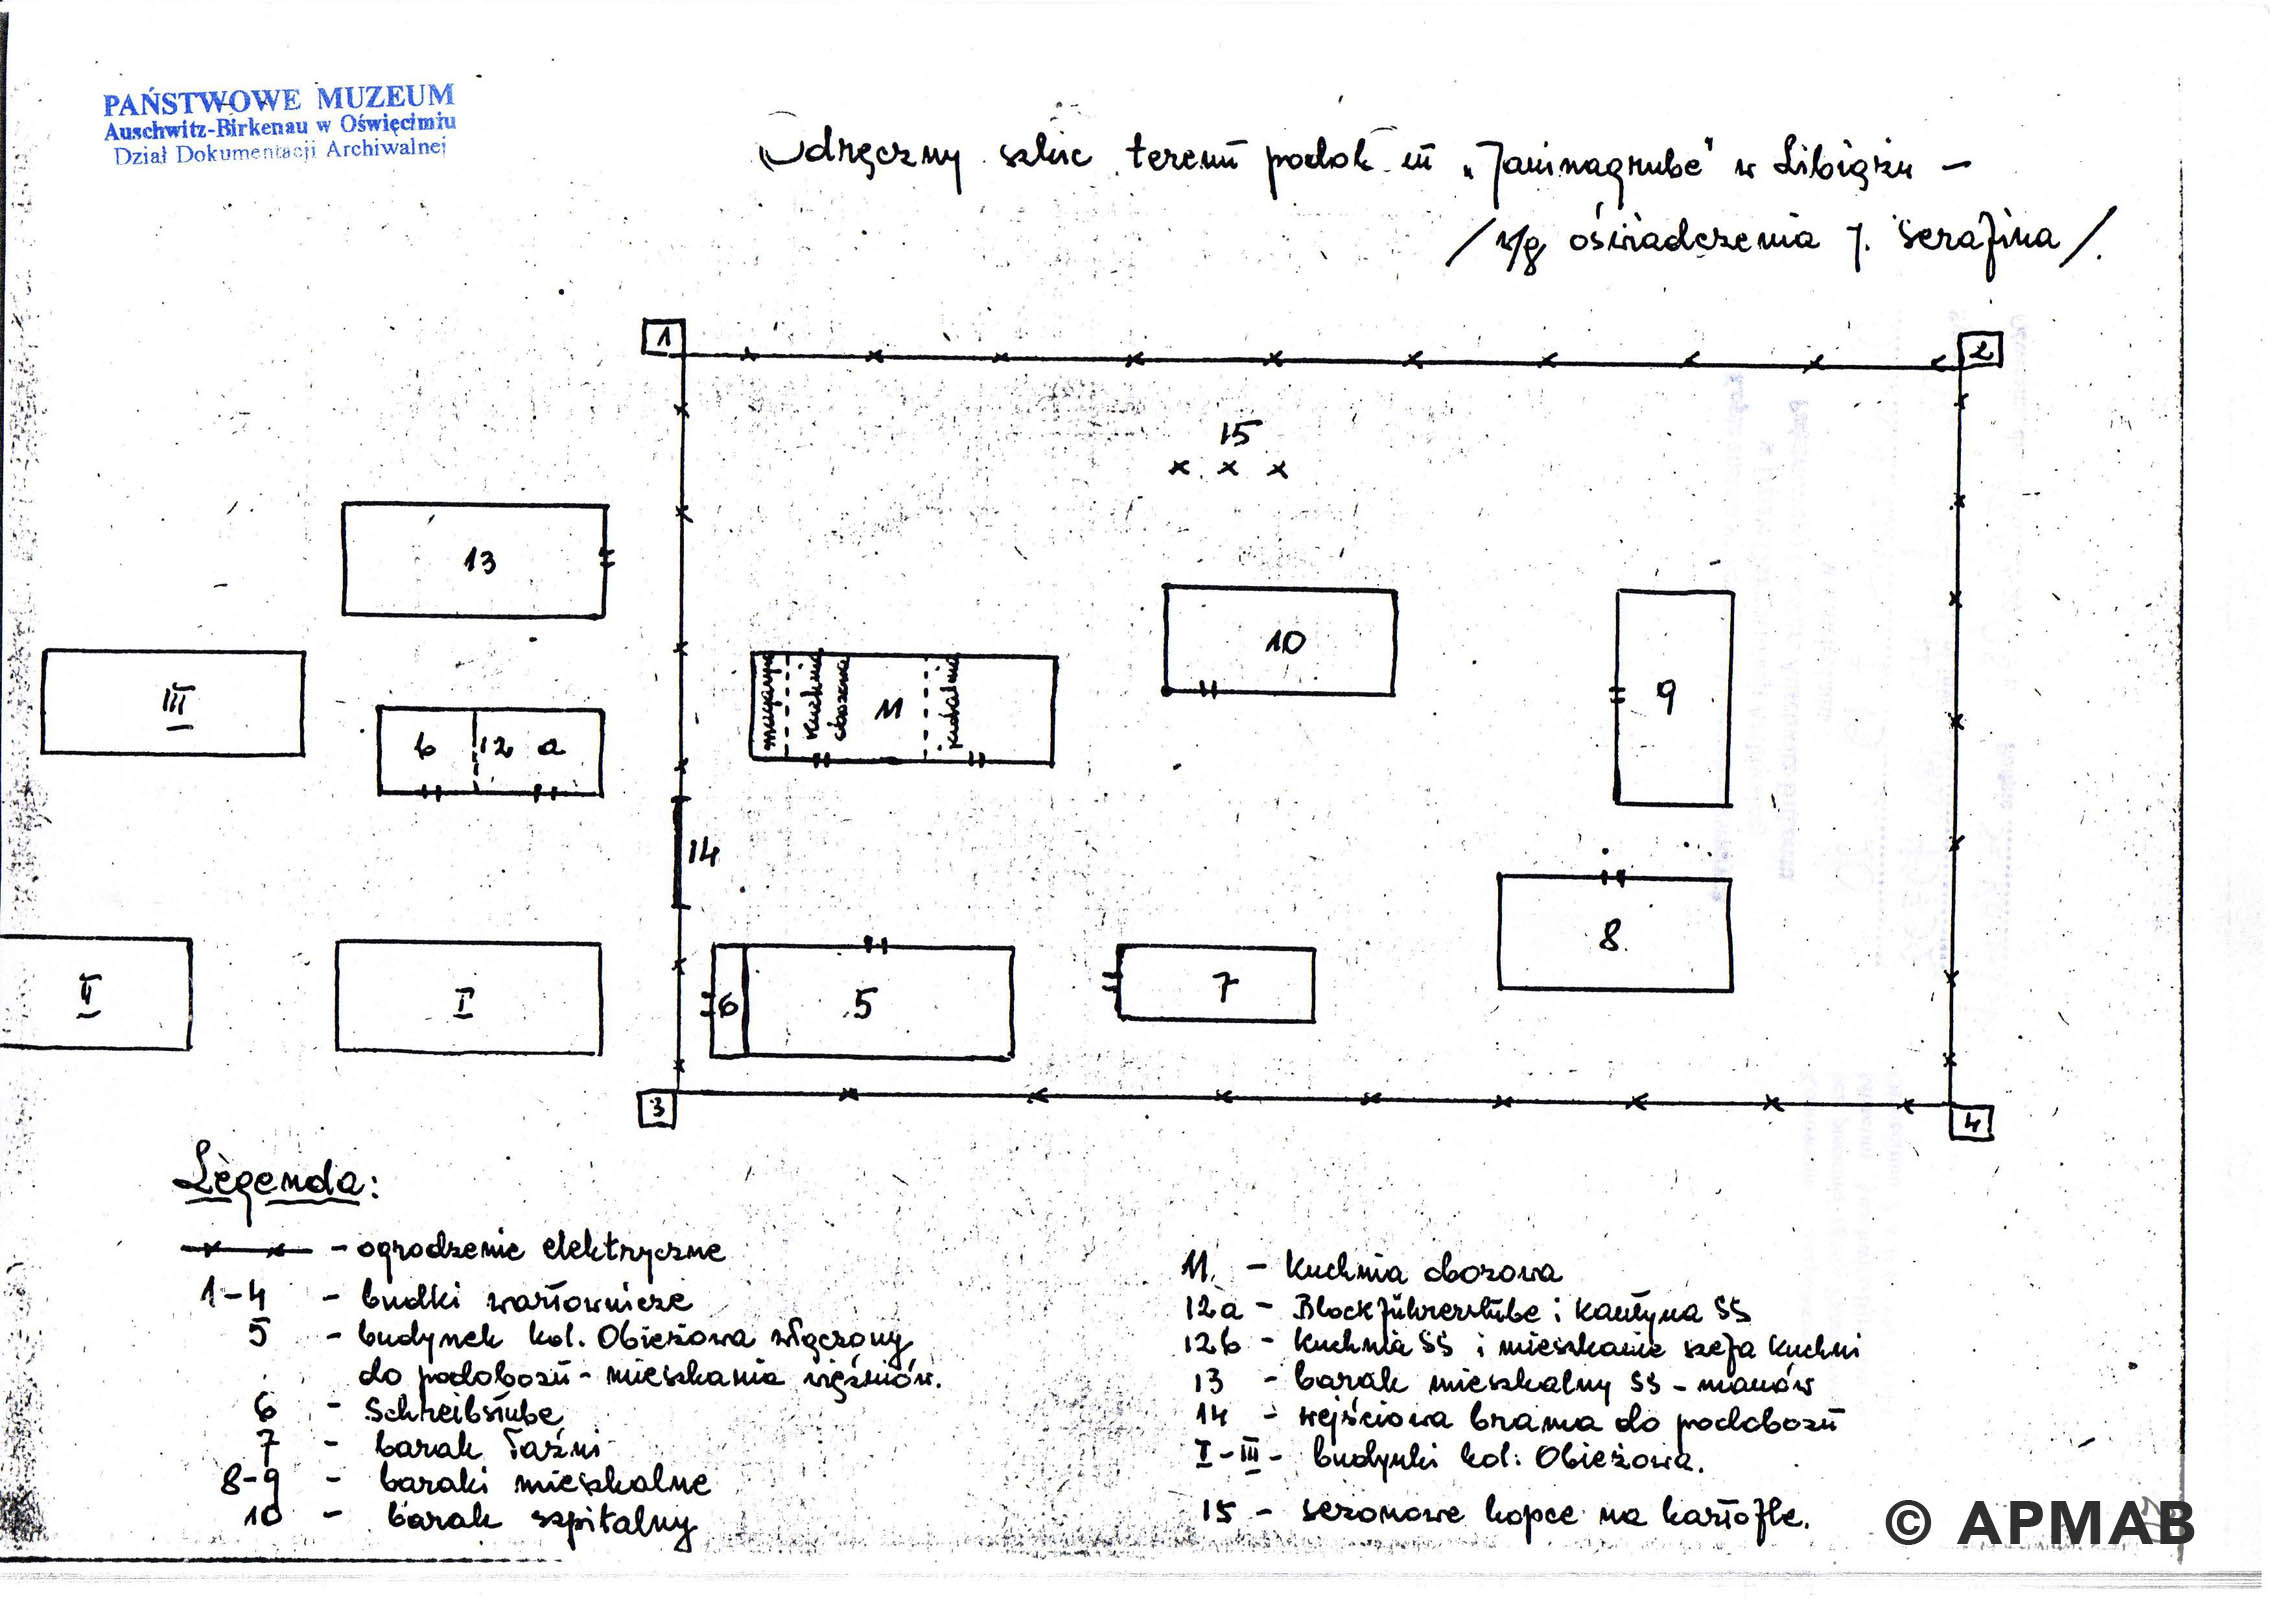 Former prisoner drawing of Janinagrube sub camp. A APMAB